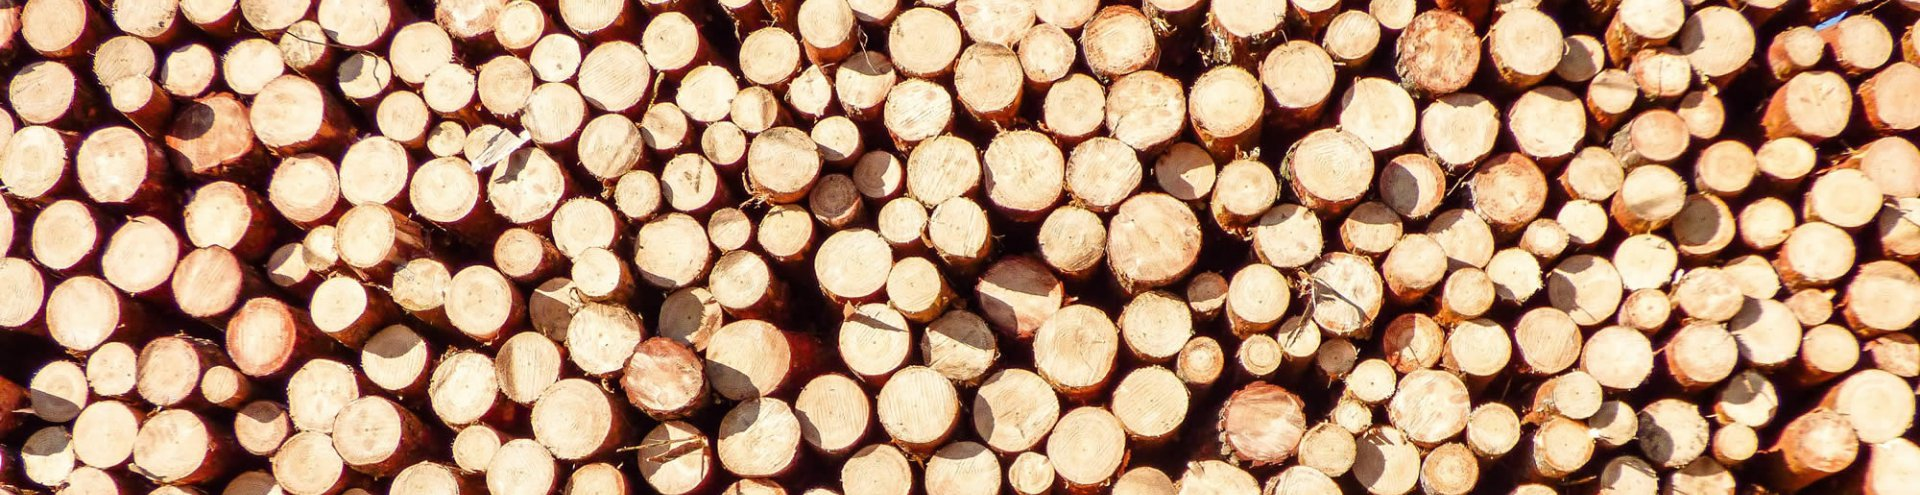 Timber Suppliers | Log Stack | Ryder Services